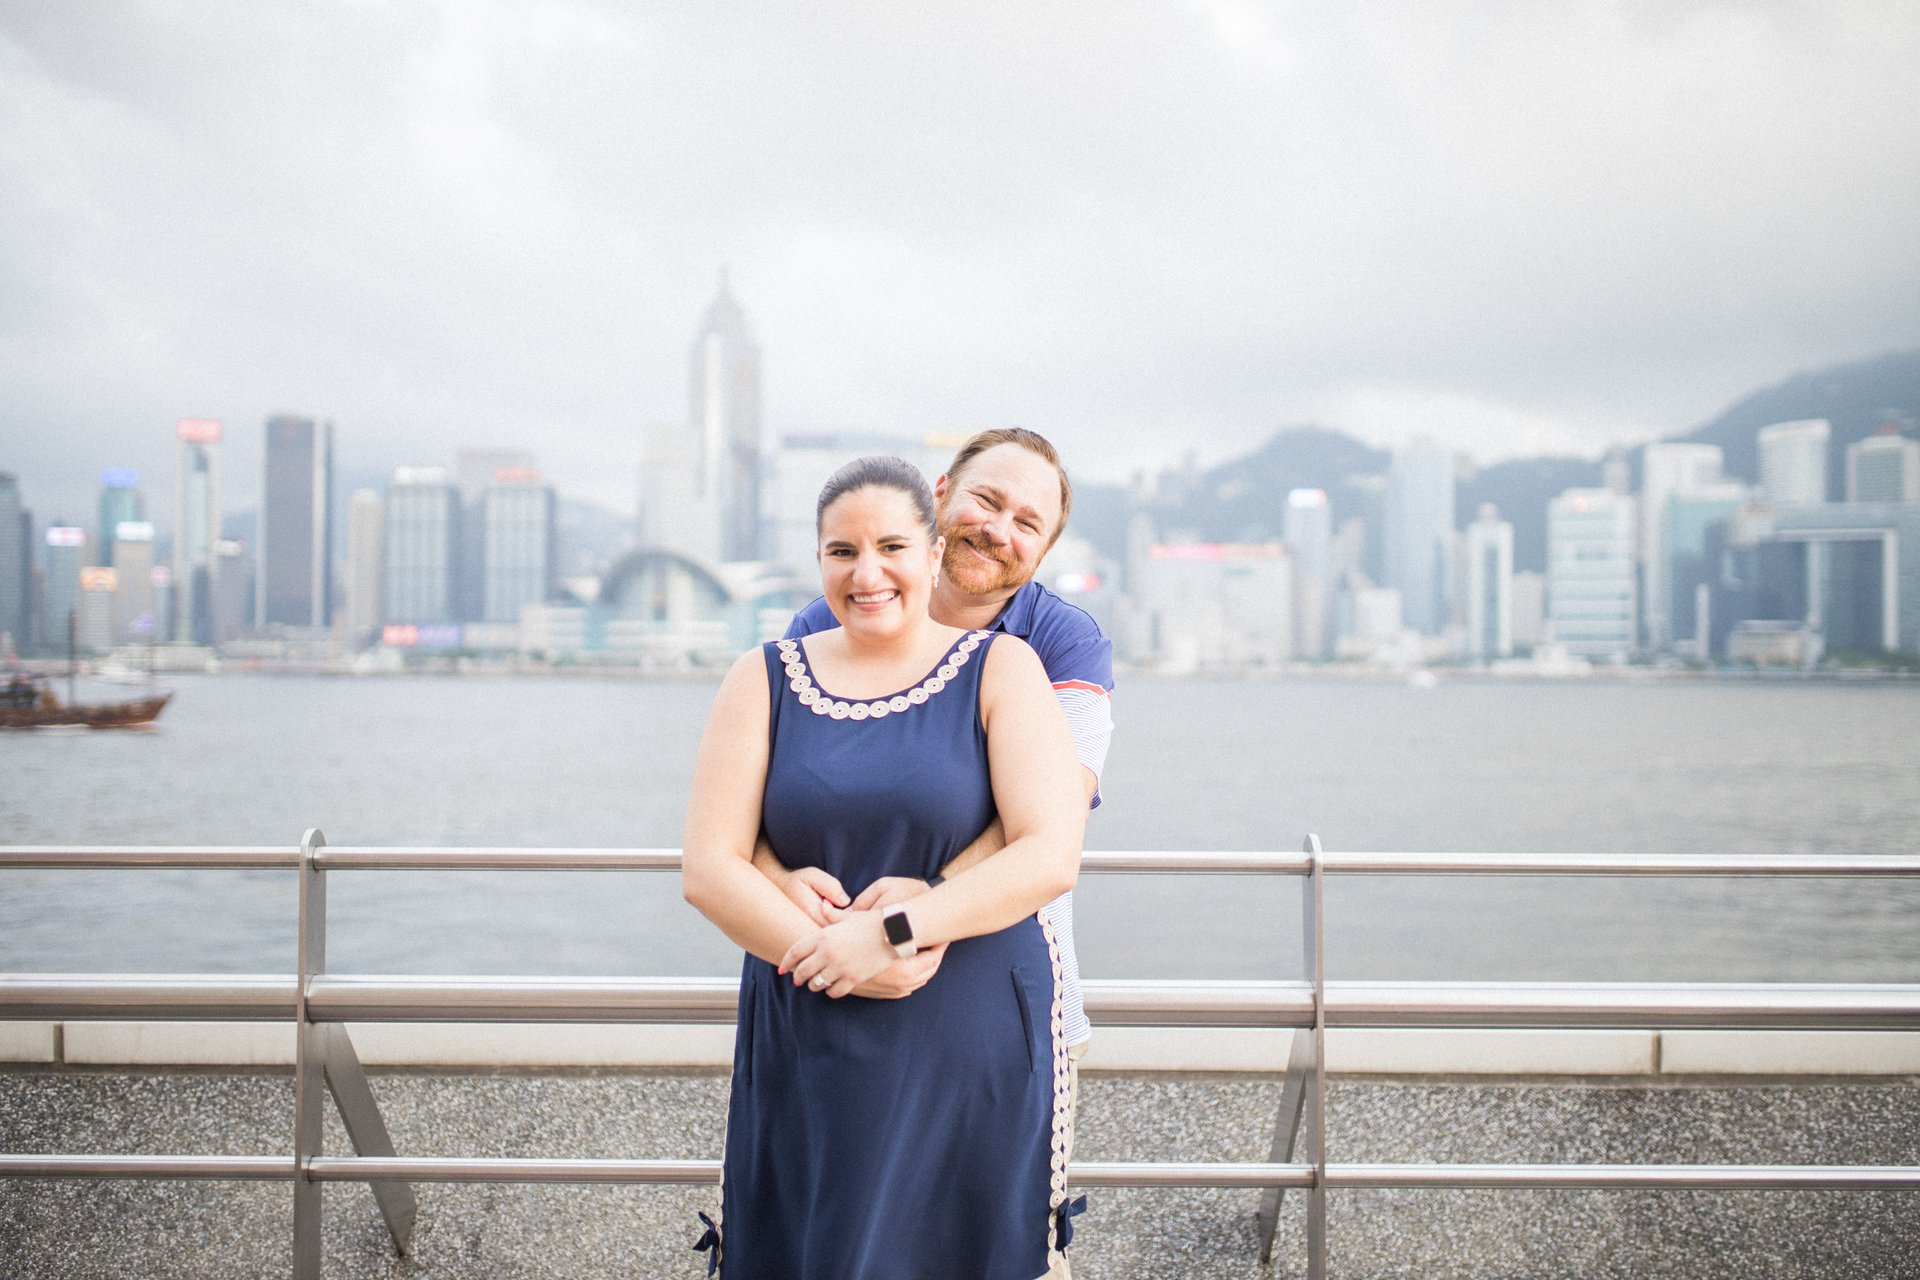 Flytographer Travel Story - Gillens Take Hong Kong